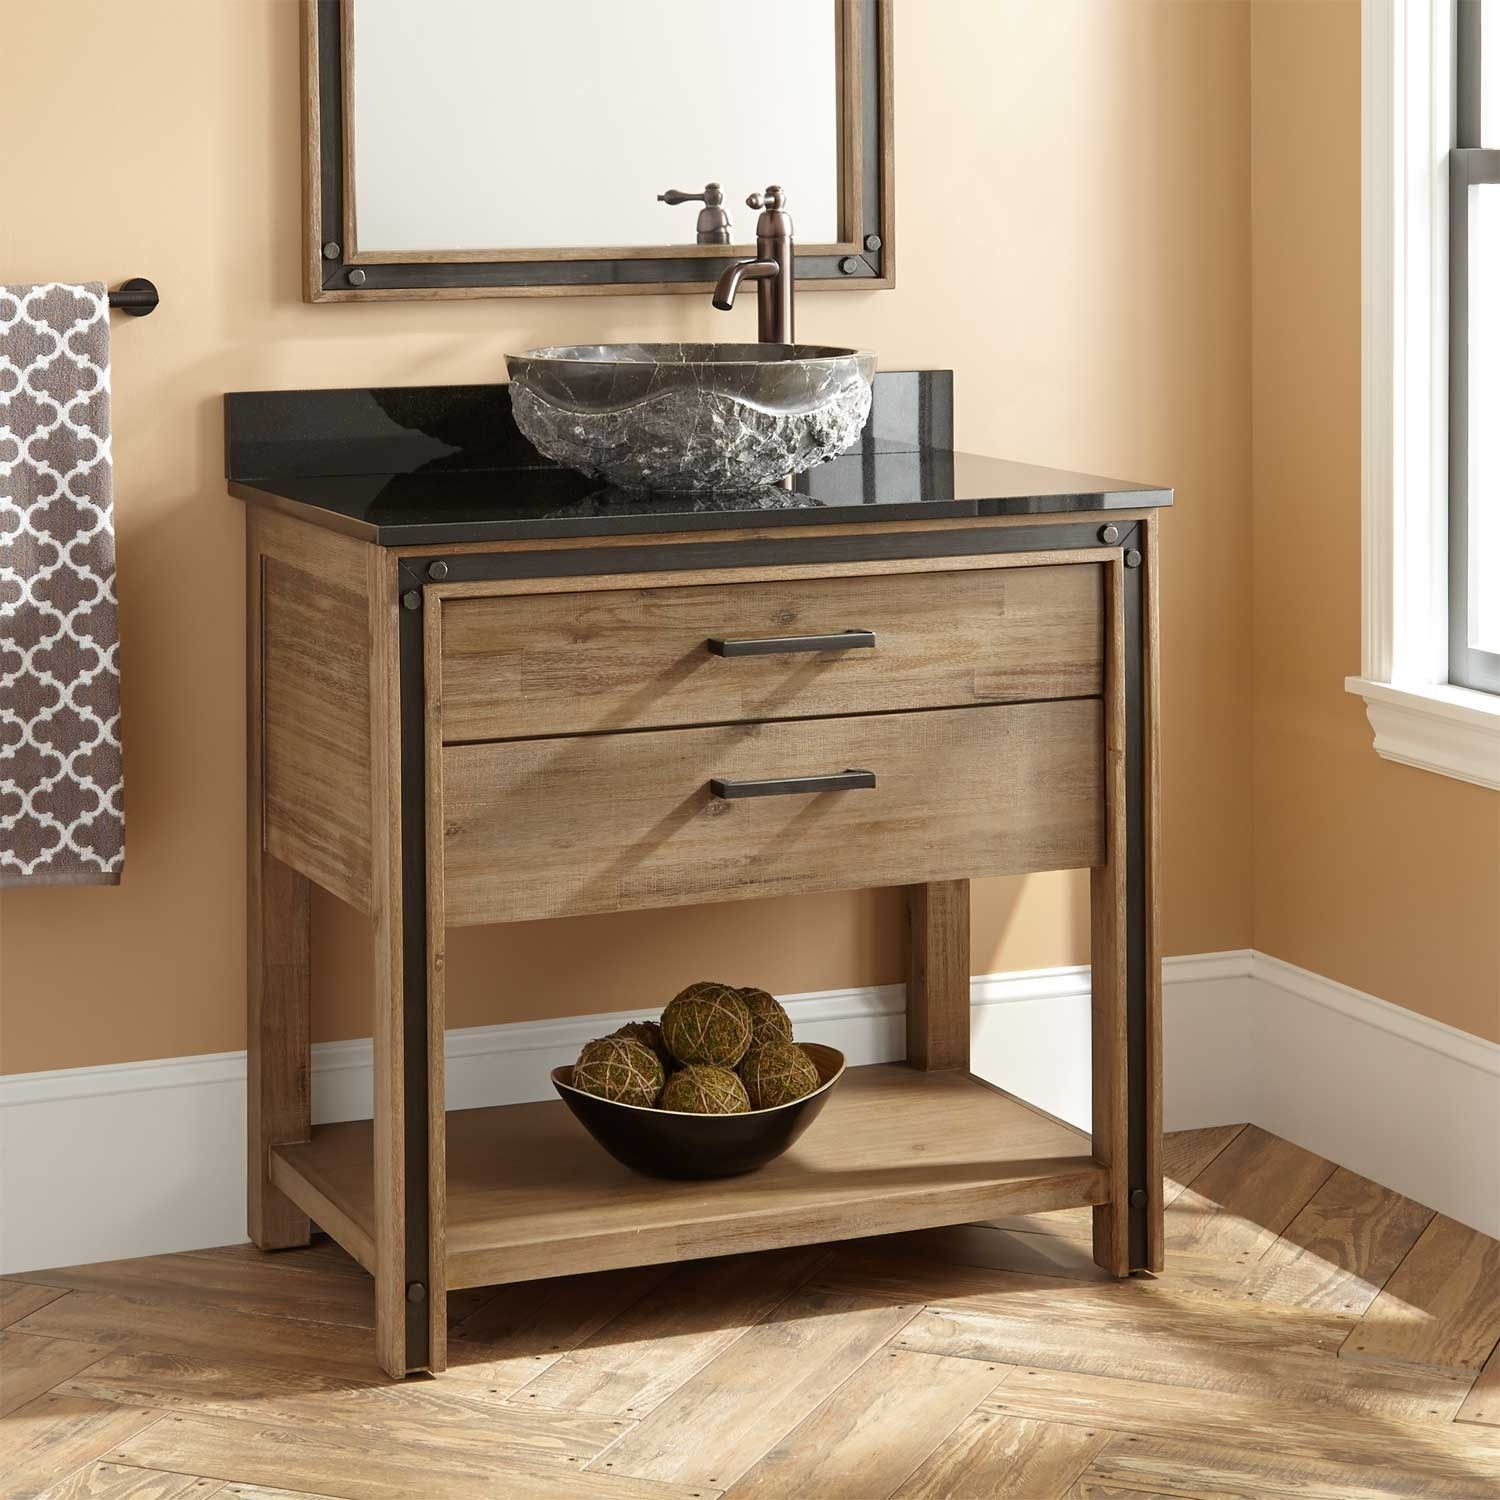 36 Bathroom Vanity For Vessel Sink